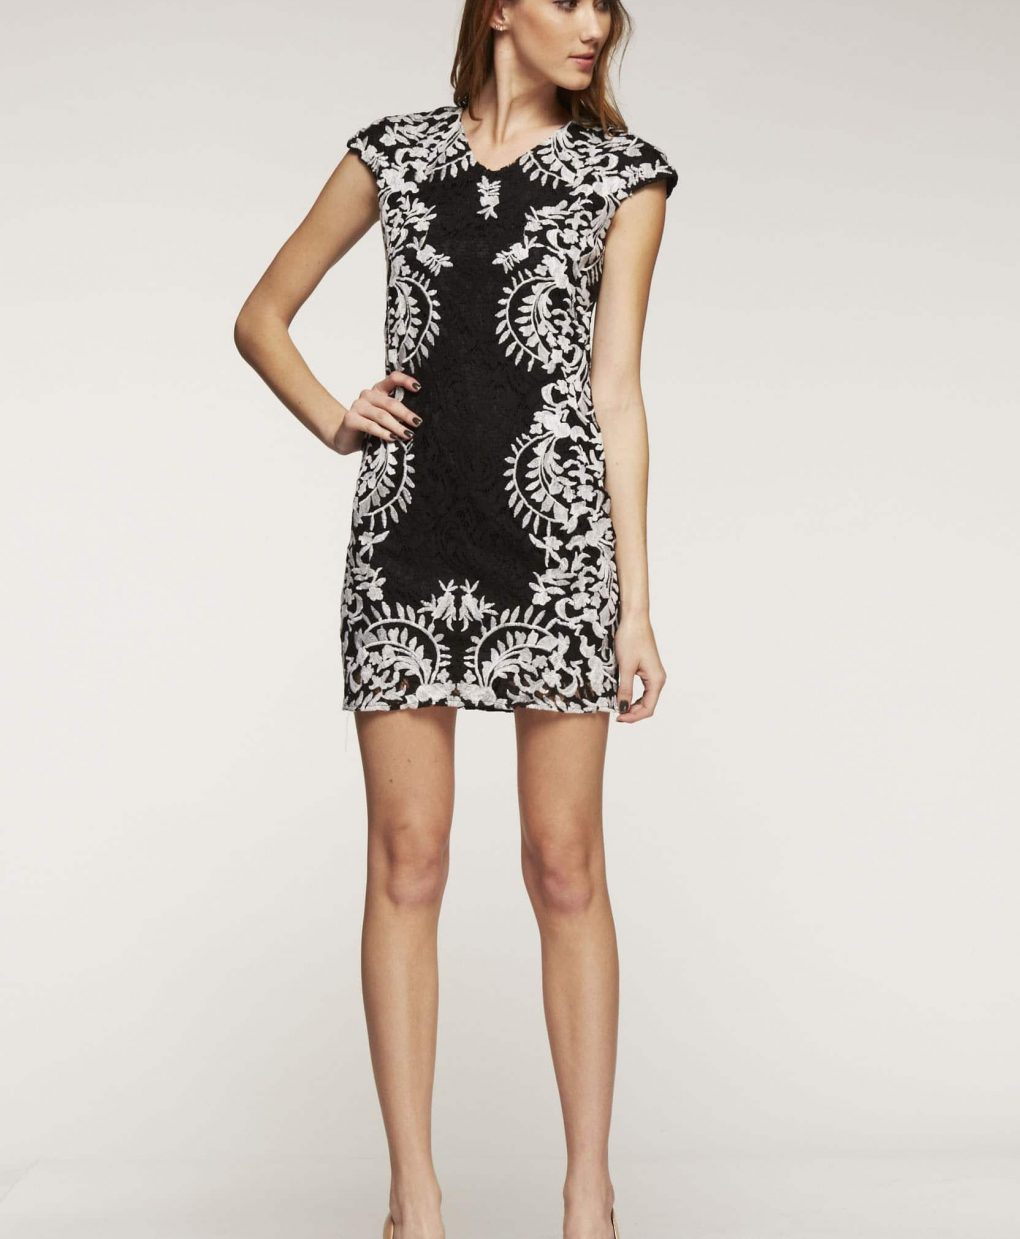 Alila Boutique Black Lace Dress